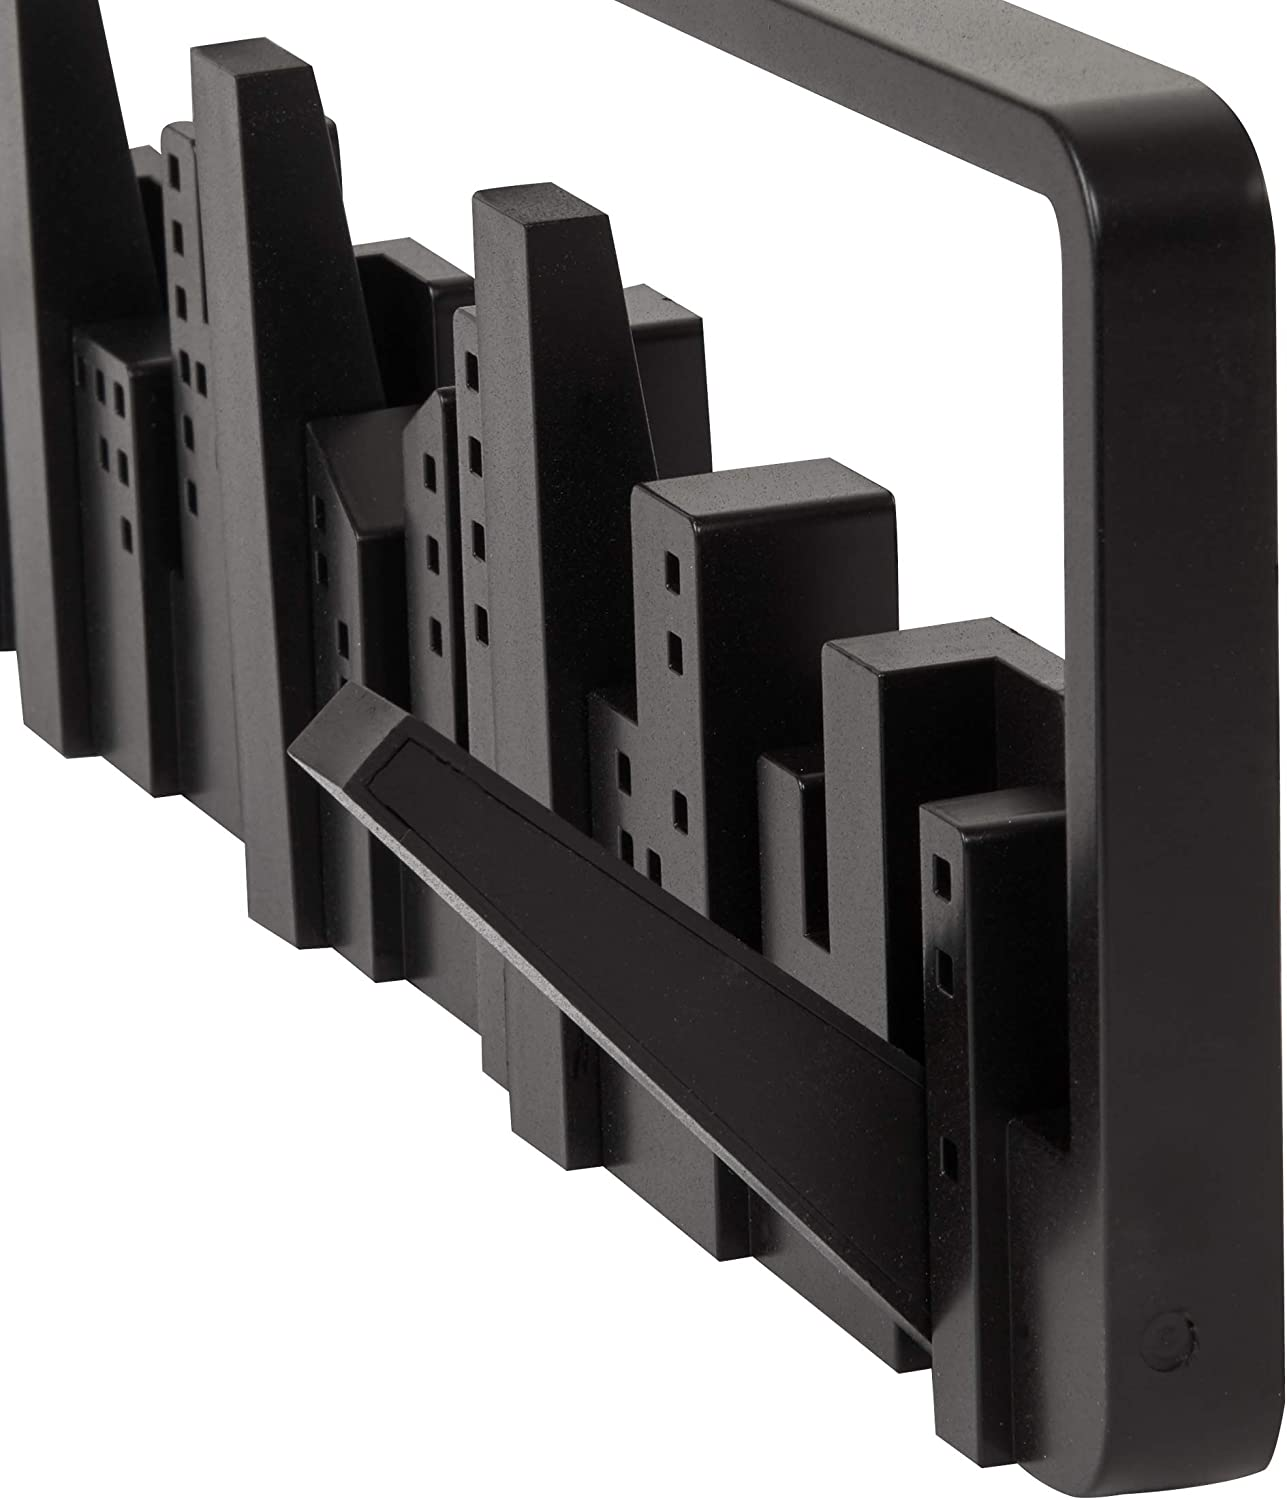 Umbra Skyline Wall-Mounted Hook System, Black Black